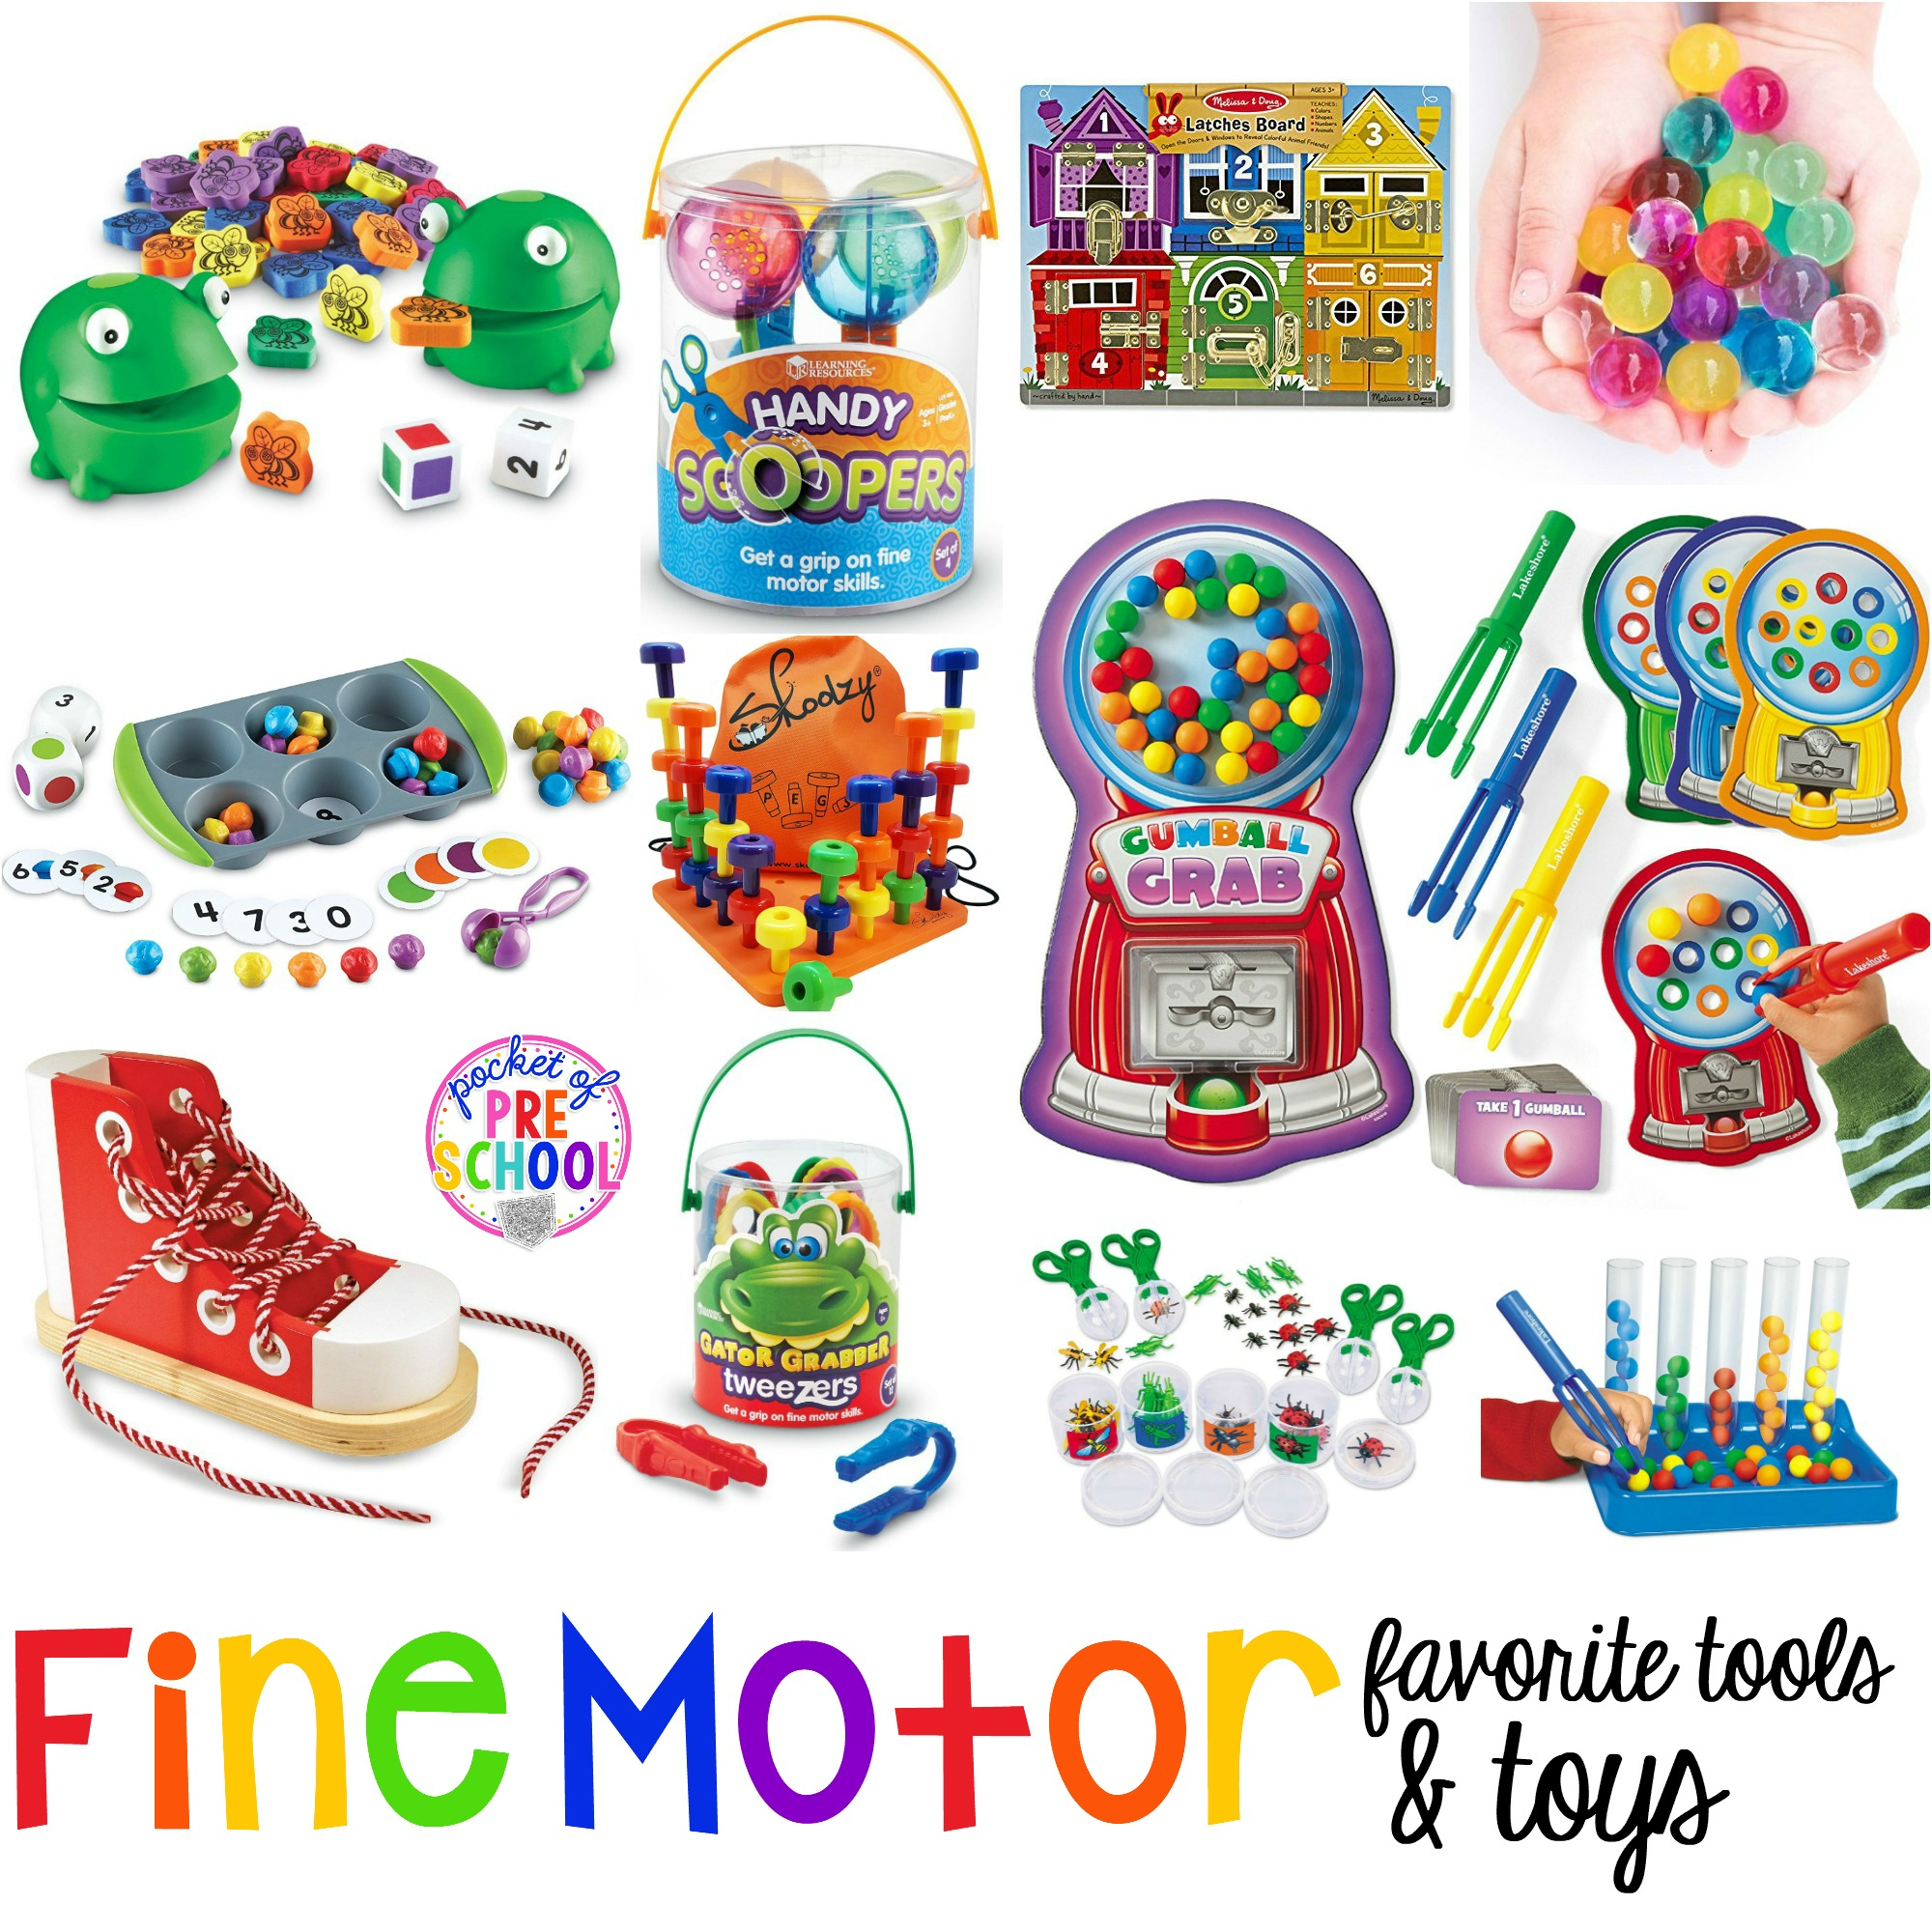 Toys For Preschoolers : Favorite fine motor tools toys for preschool